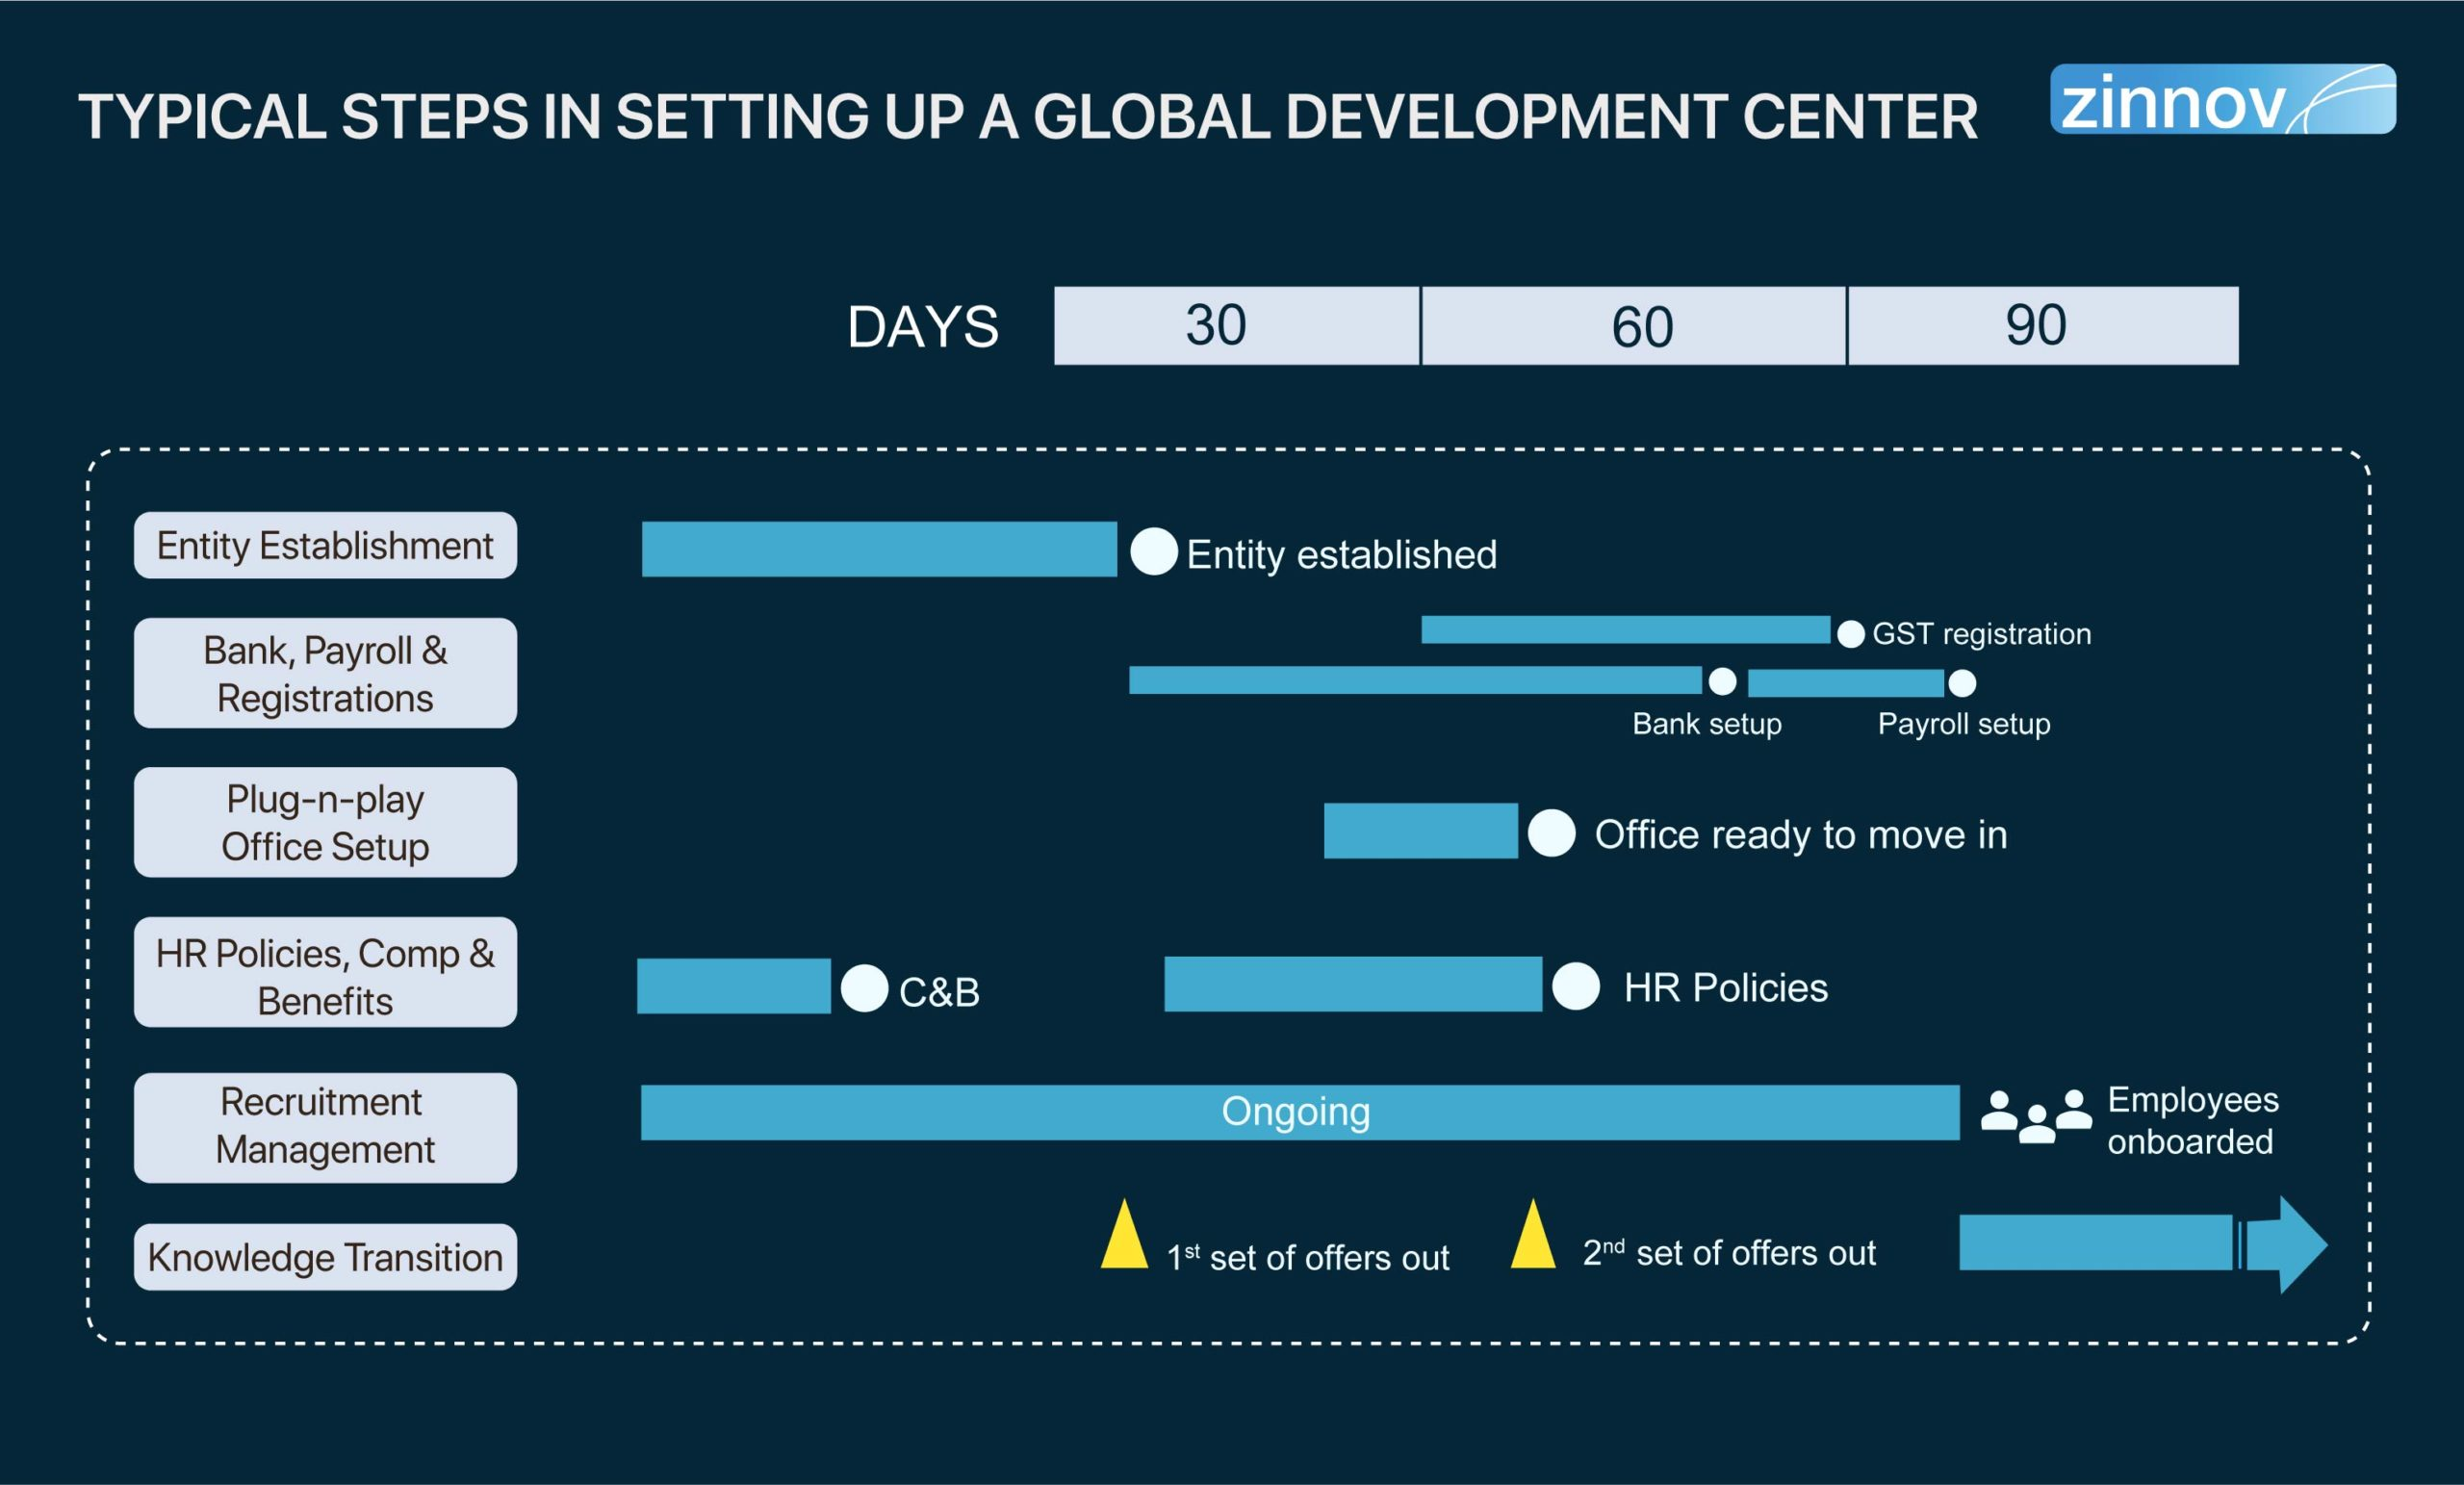 Typical Steps In Setting Up A Global Development Center